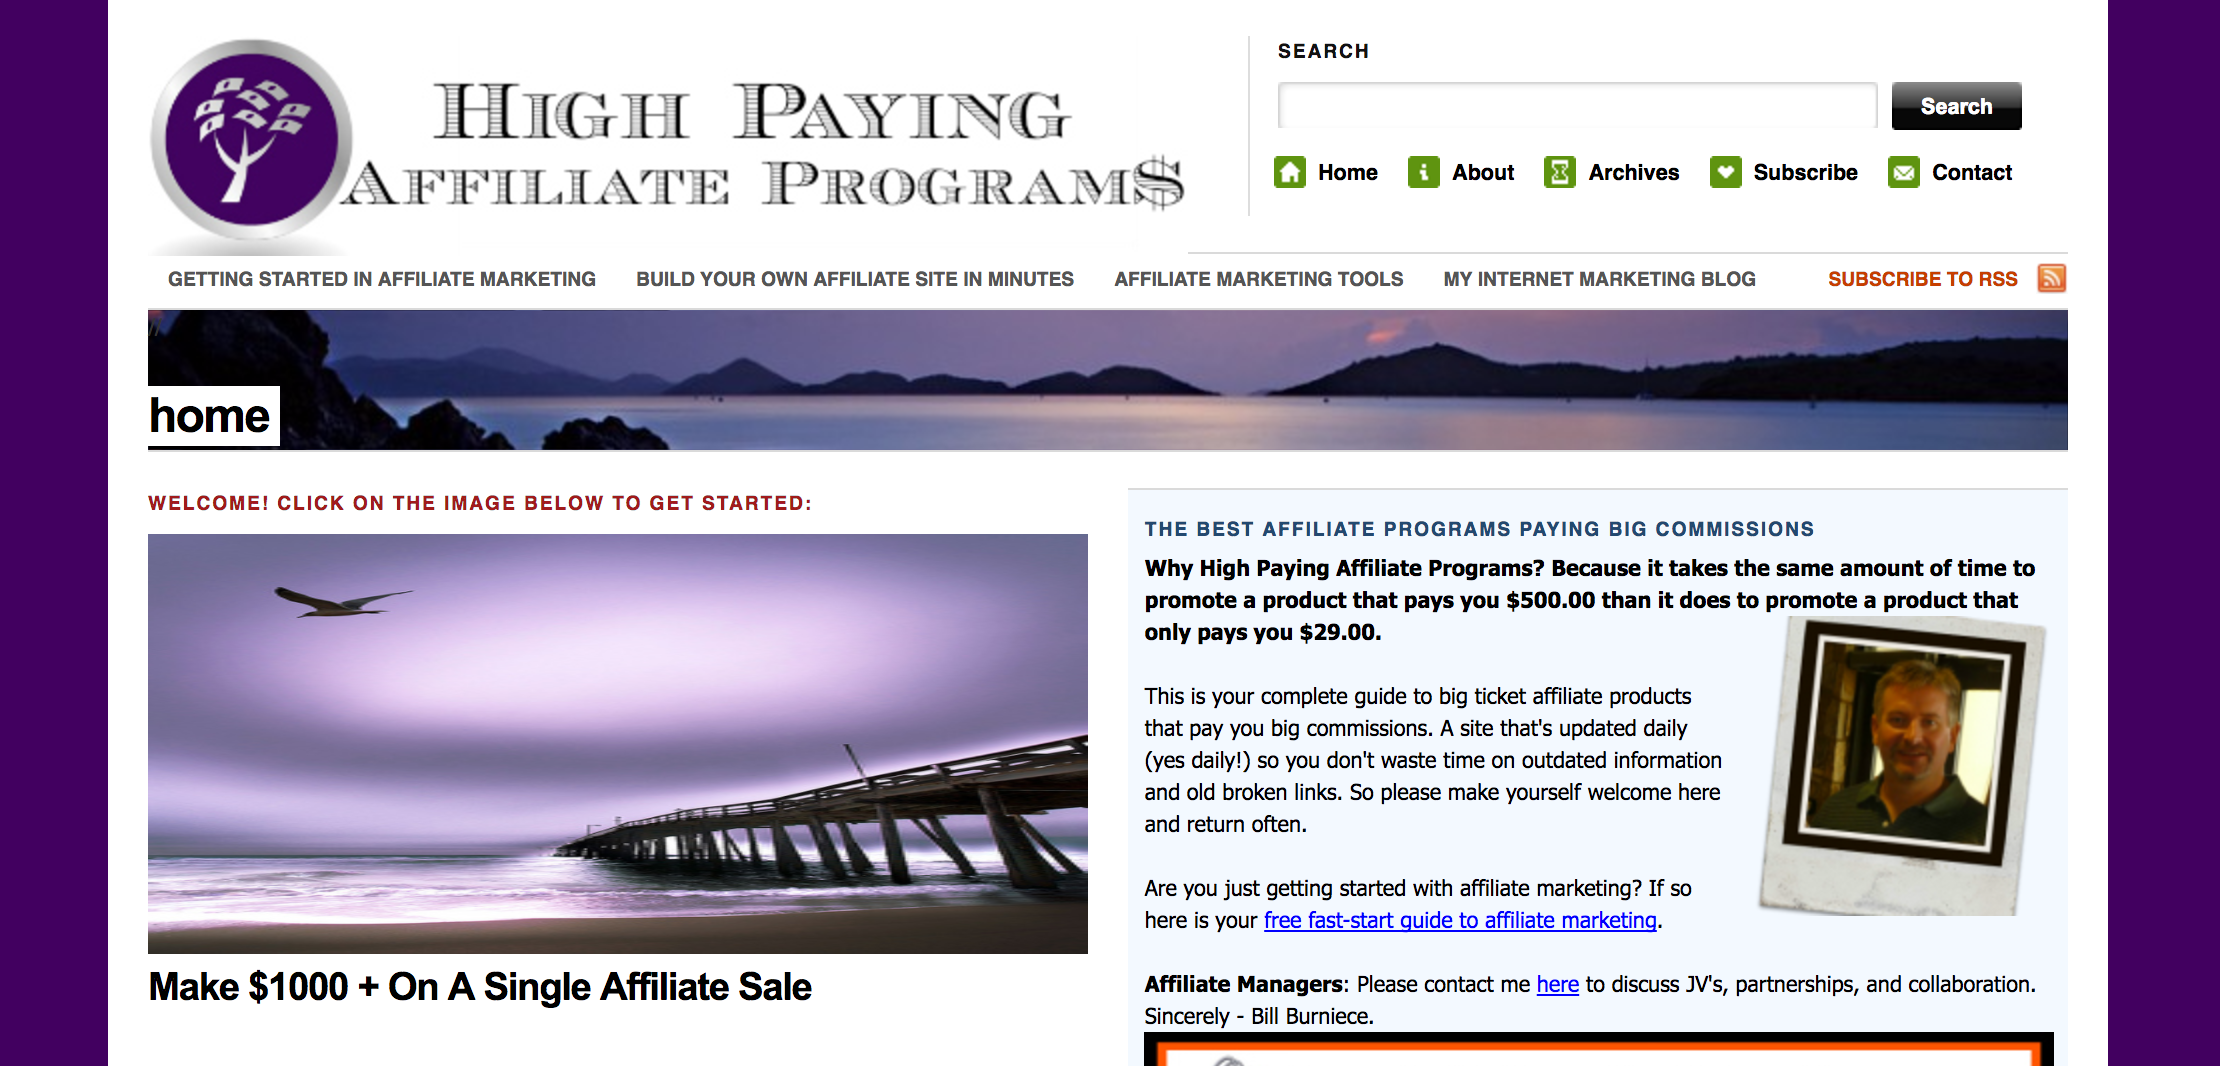 High Paying Affiliate Programs Blog